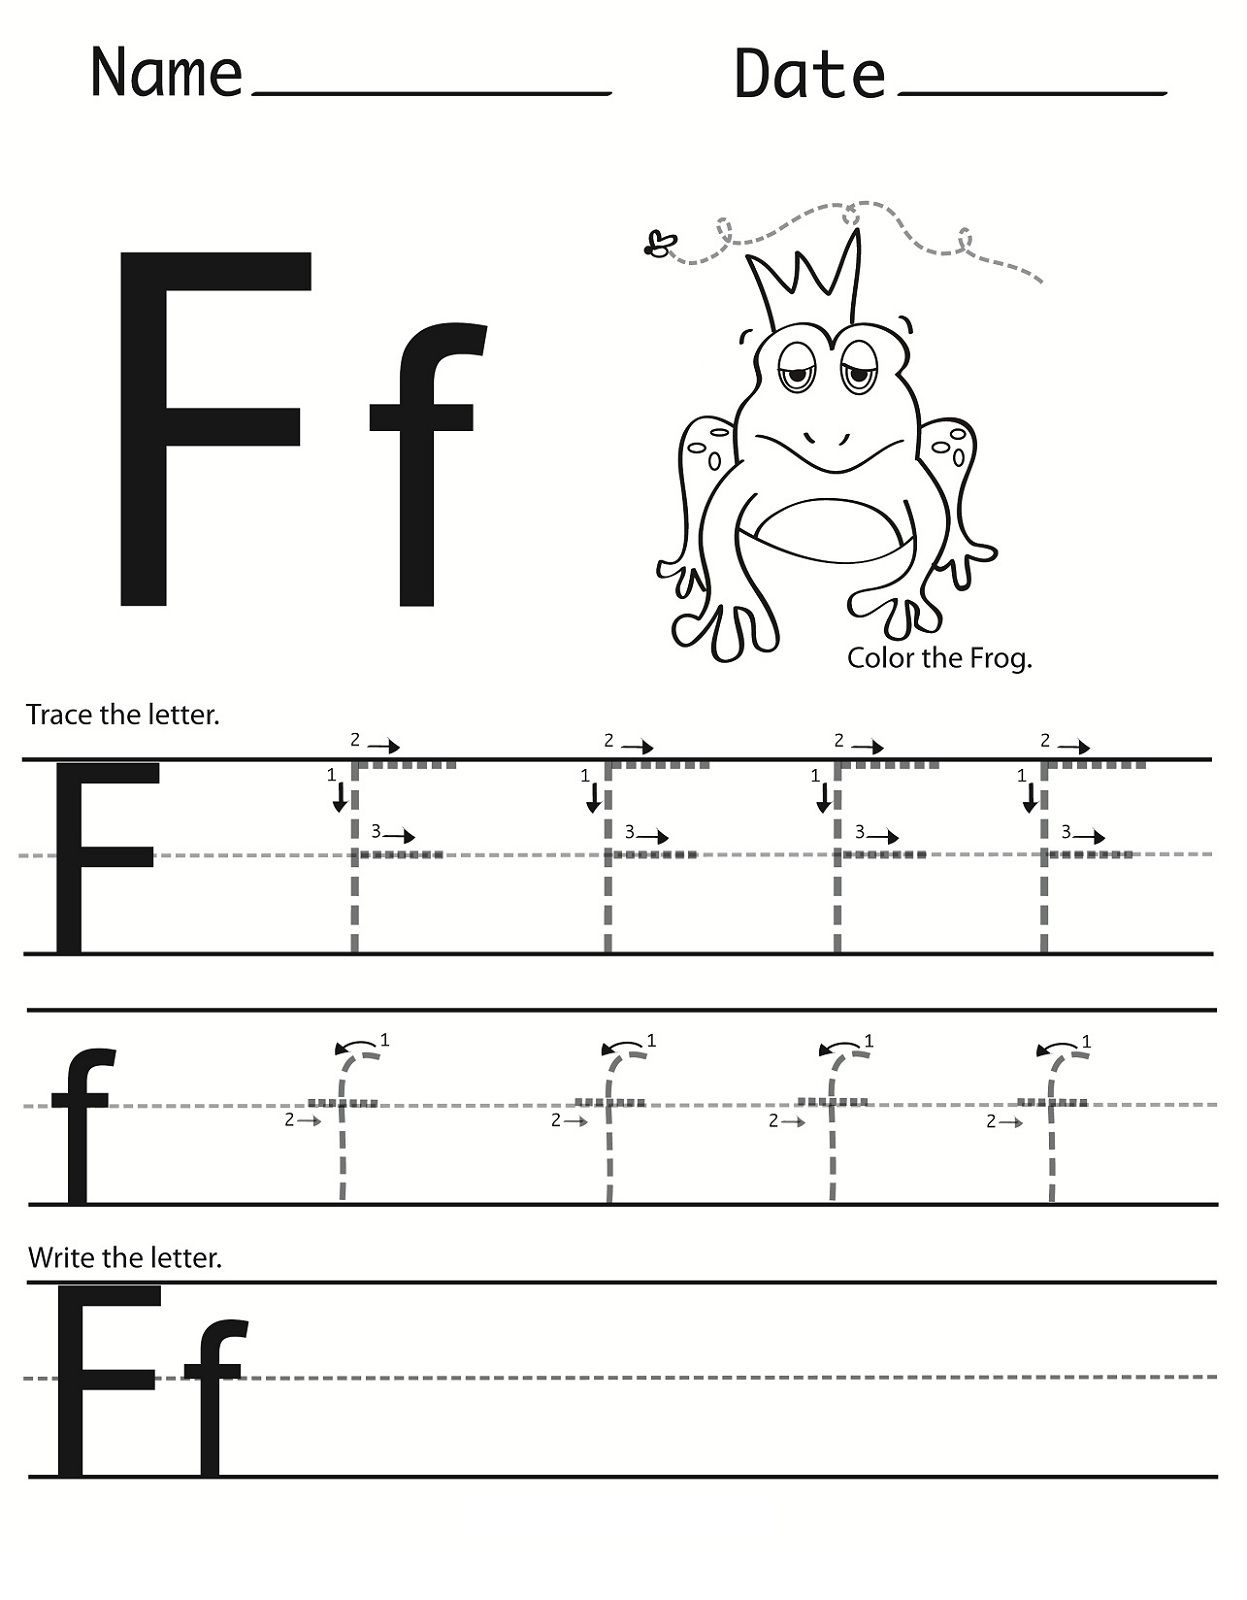 Letter F Worksheet For Preschool And Kindergarten with regard to Tracing Letter F Worksheets Preschool